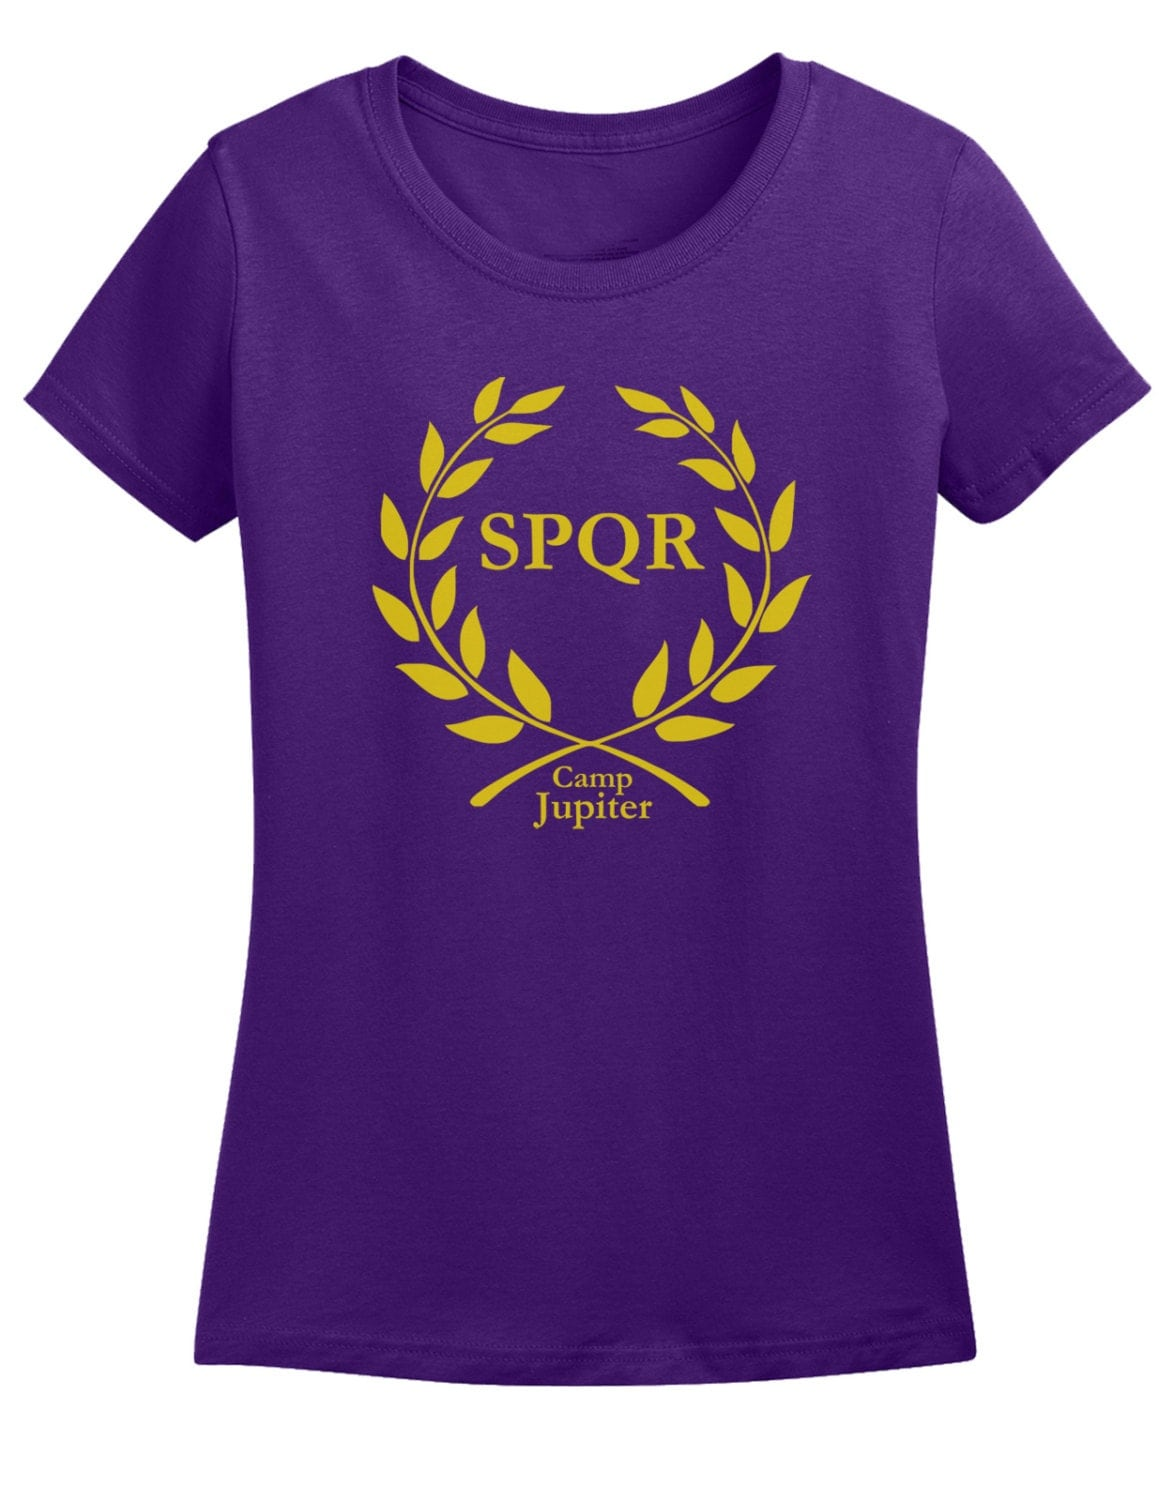 Request a custom order and have something made just for you Camp Jupiter Shirt Percy Jackson